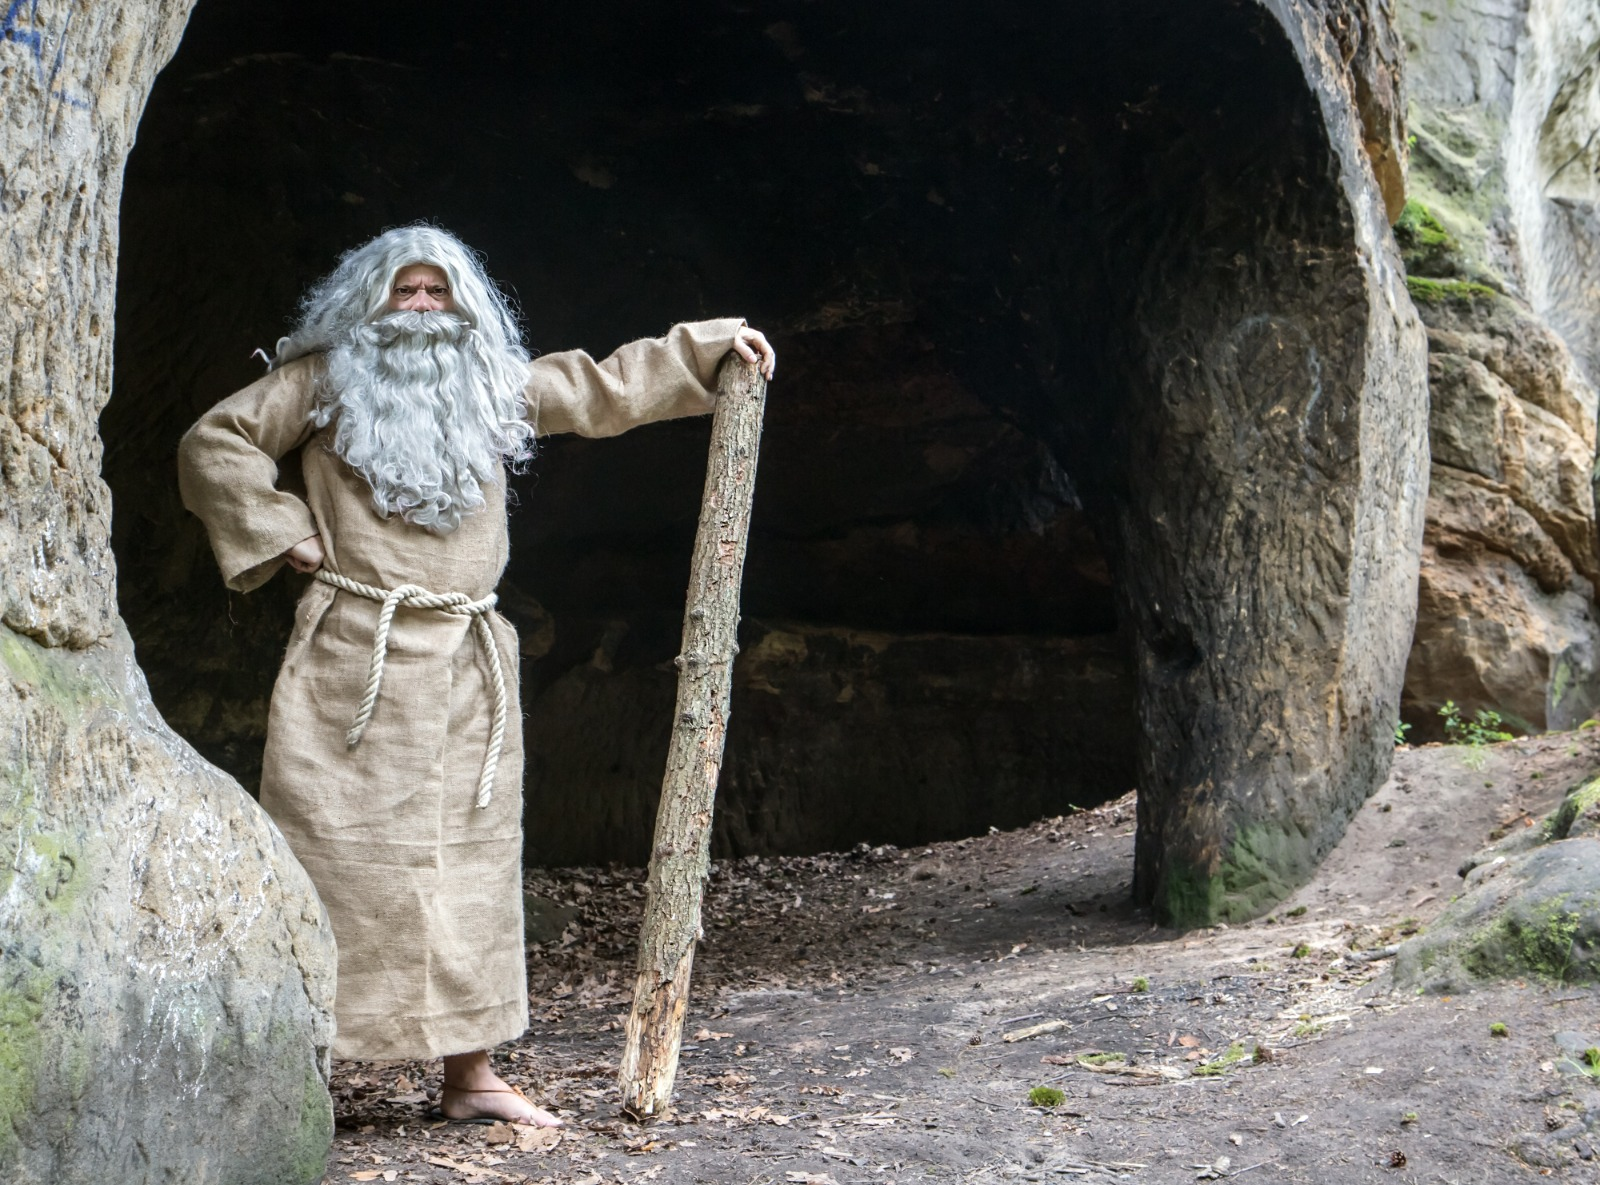 An imaginary image of a Christian hermit practicing monasticism in a cave. Although some early Christian practices of Monasticism have disappeared, the main form of Monasticism has been in the scene, represented in Christian Clergy-Celibacy,--a practice rectified  by the perfect message of Islam.